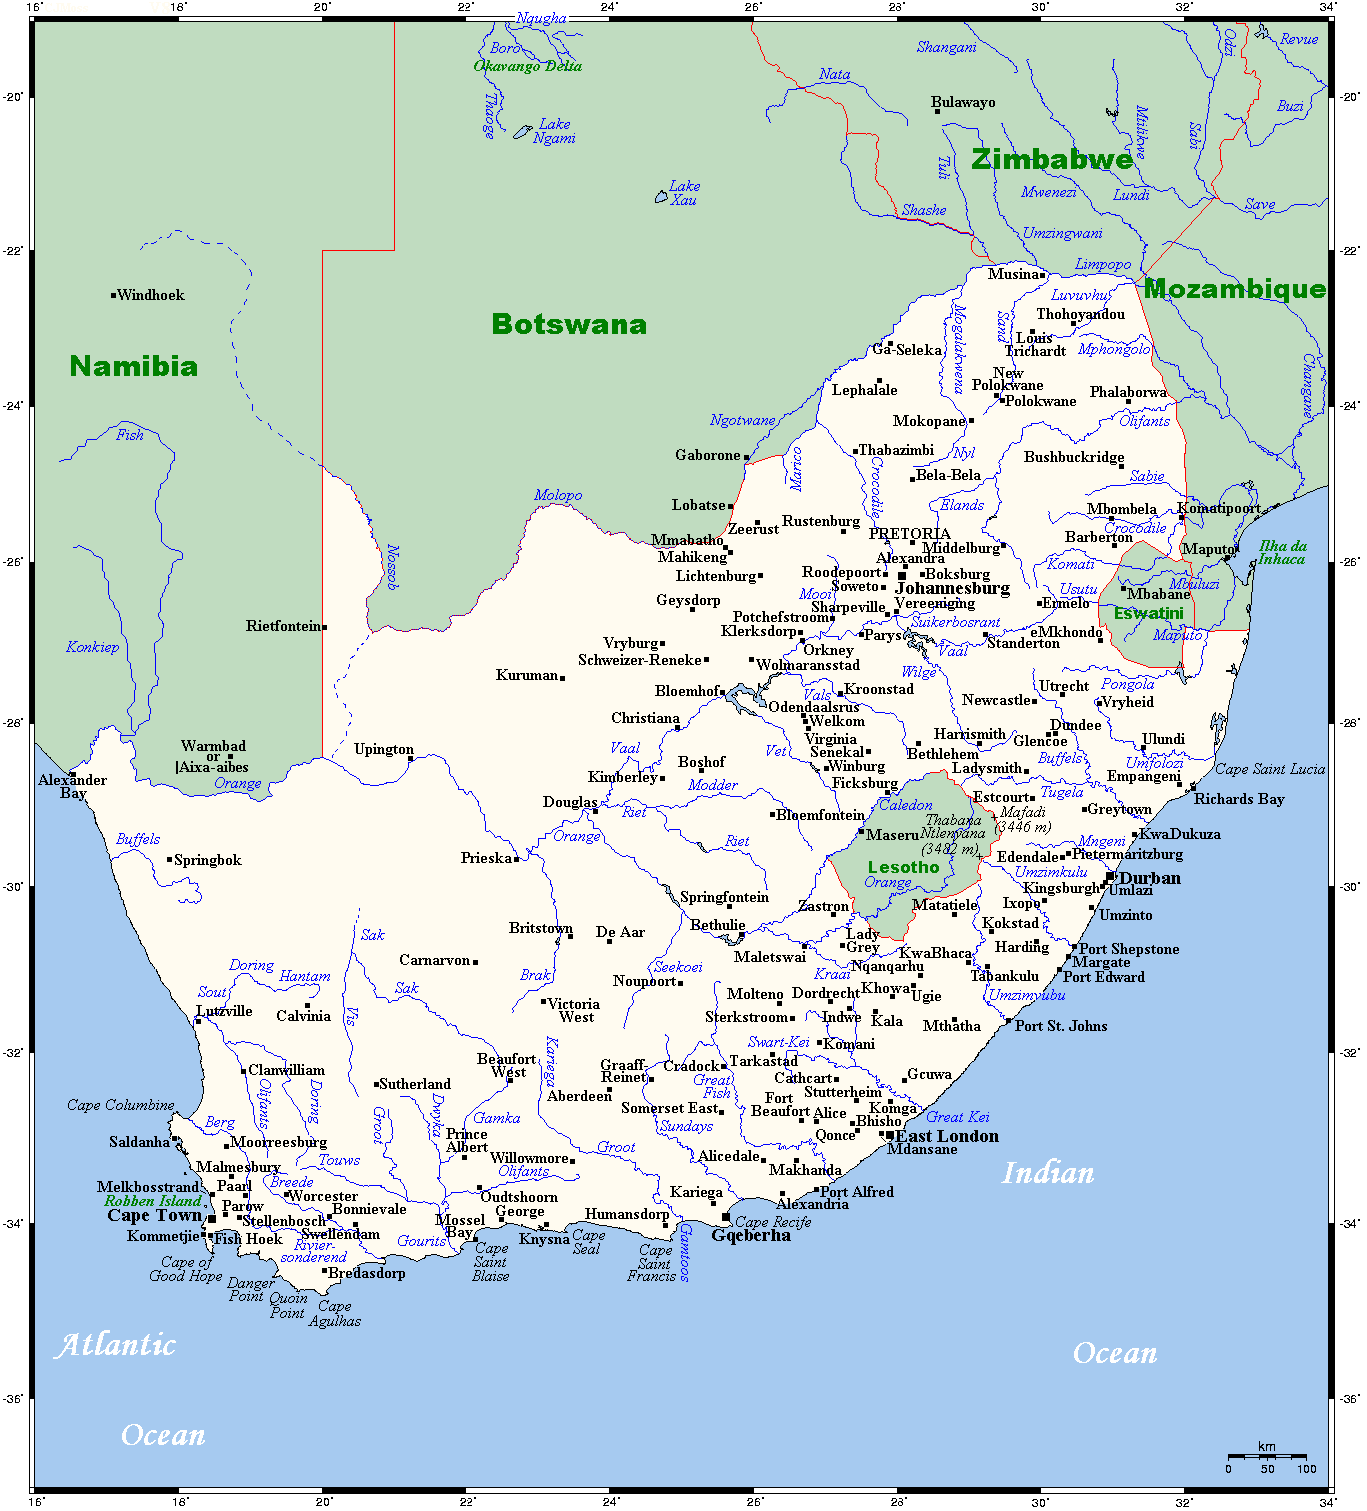 List of rivers of South Africa - Wikipedia